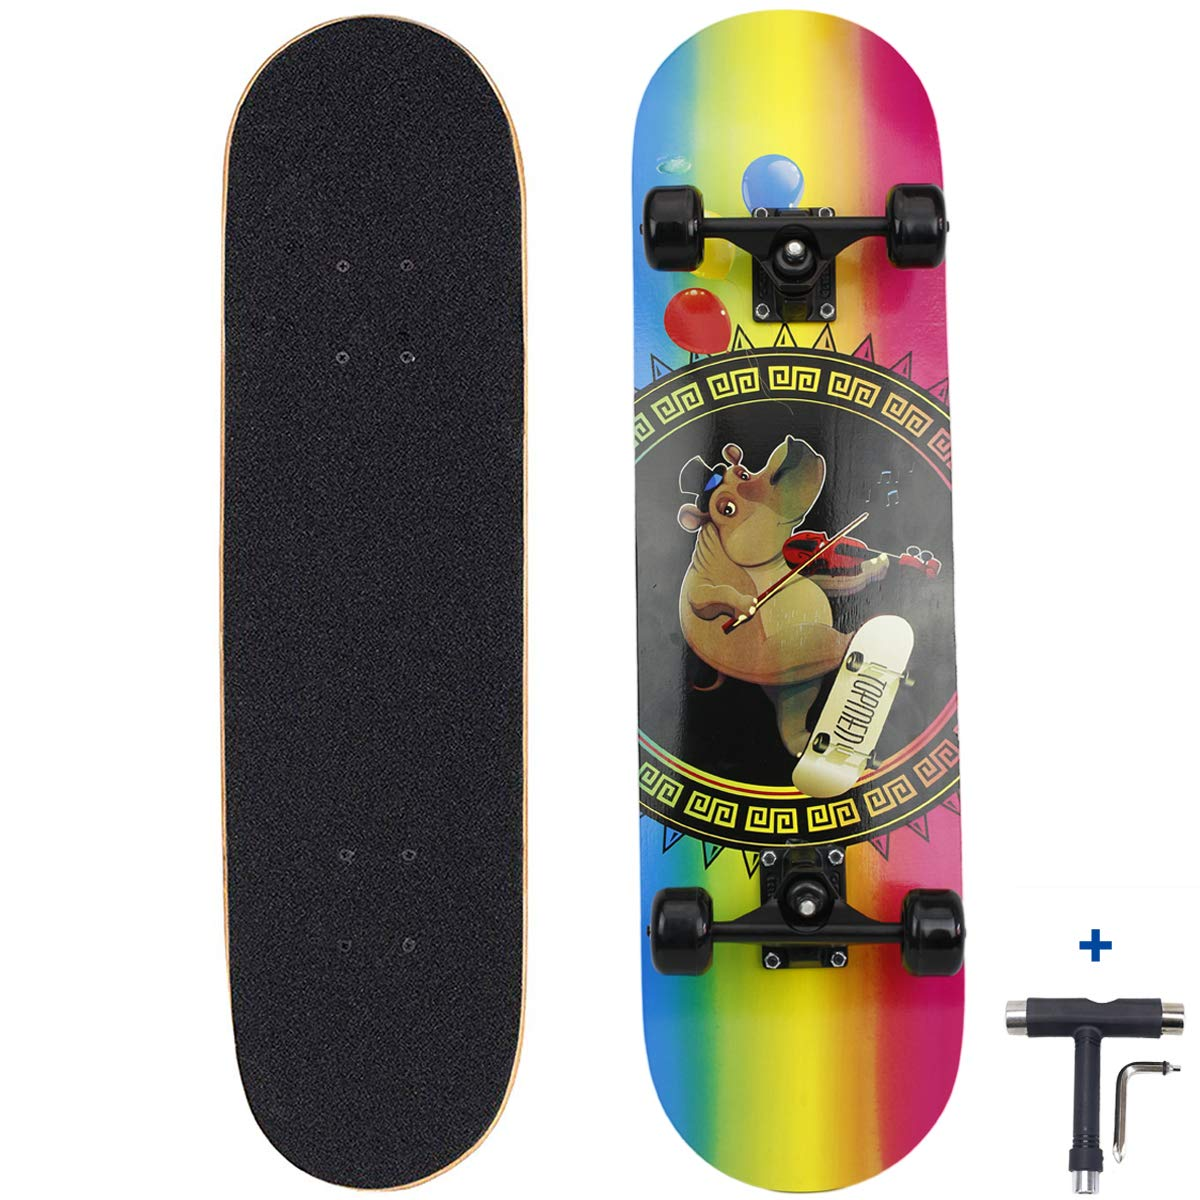 Dreambeauty 31 inch Pro Skateboard Complete,7 Layer Maple Wood Double Kick Concave Skateboards Girls Beginners Adults Boys Tricks Skateboards for Teens Kids